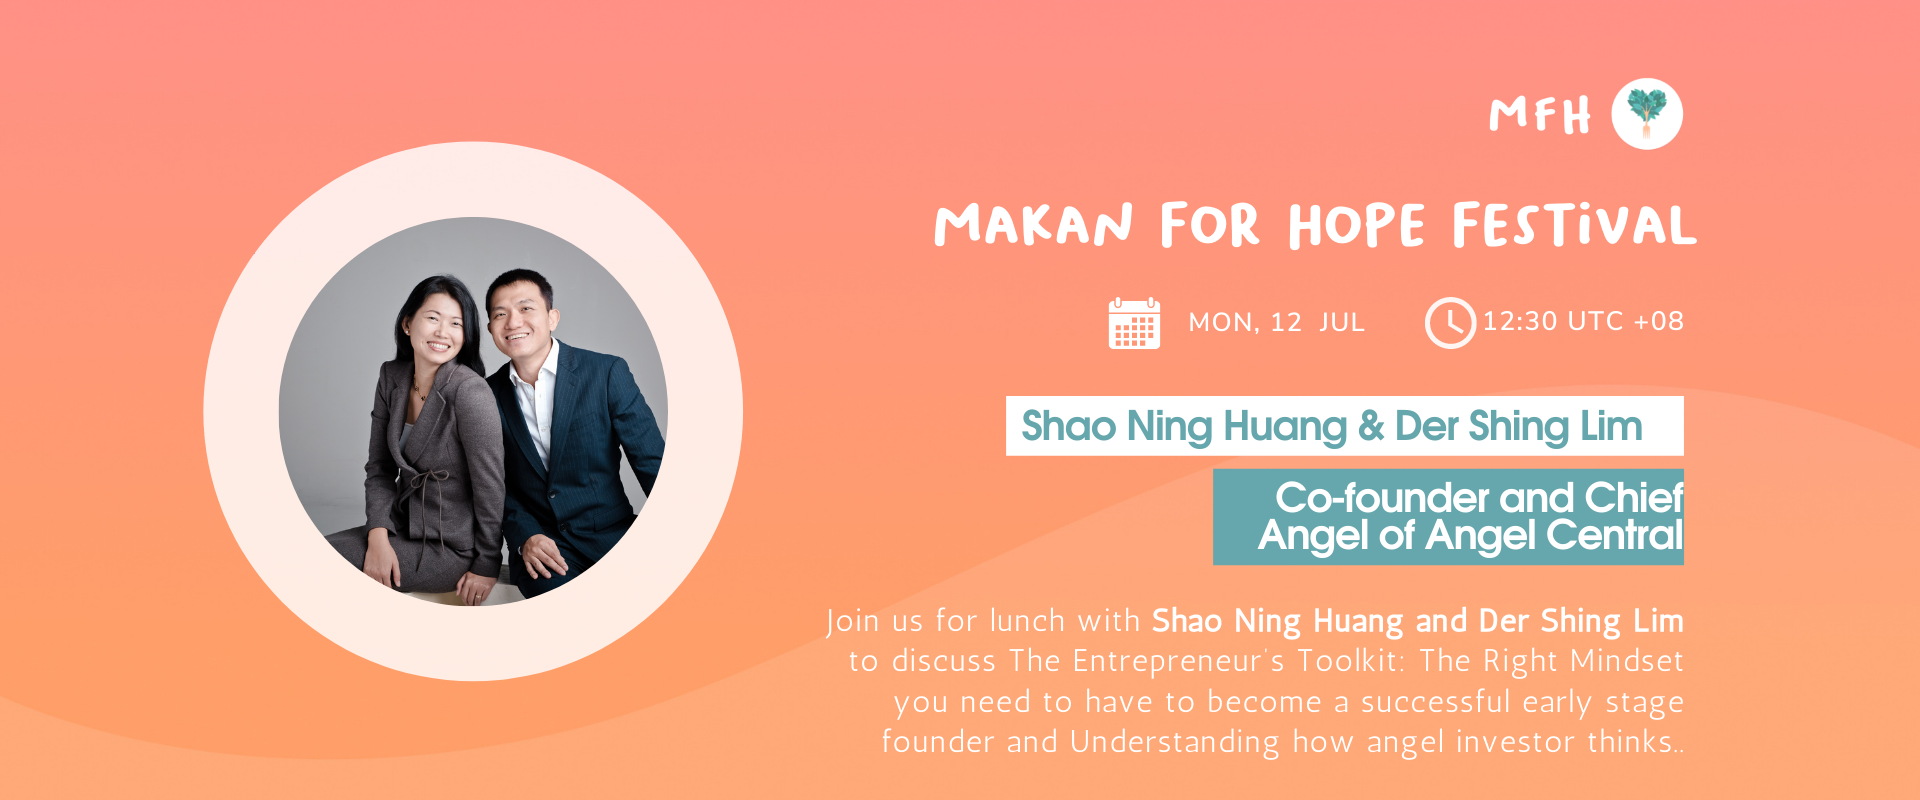 Shao-Ning Huang - The Entrepreneur's Toolkit: The Right Mindset for a Successful Early Stage Founder & Understanding How Angel Investing Works